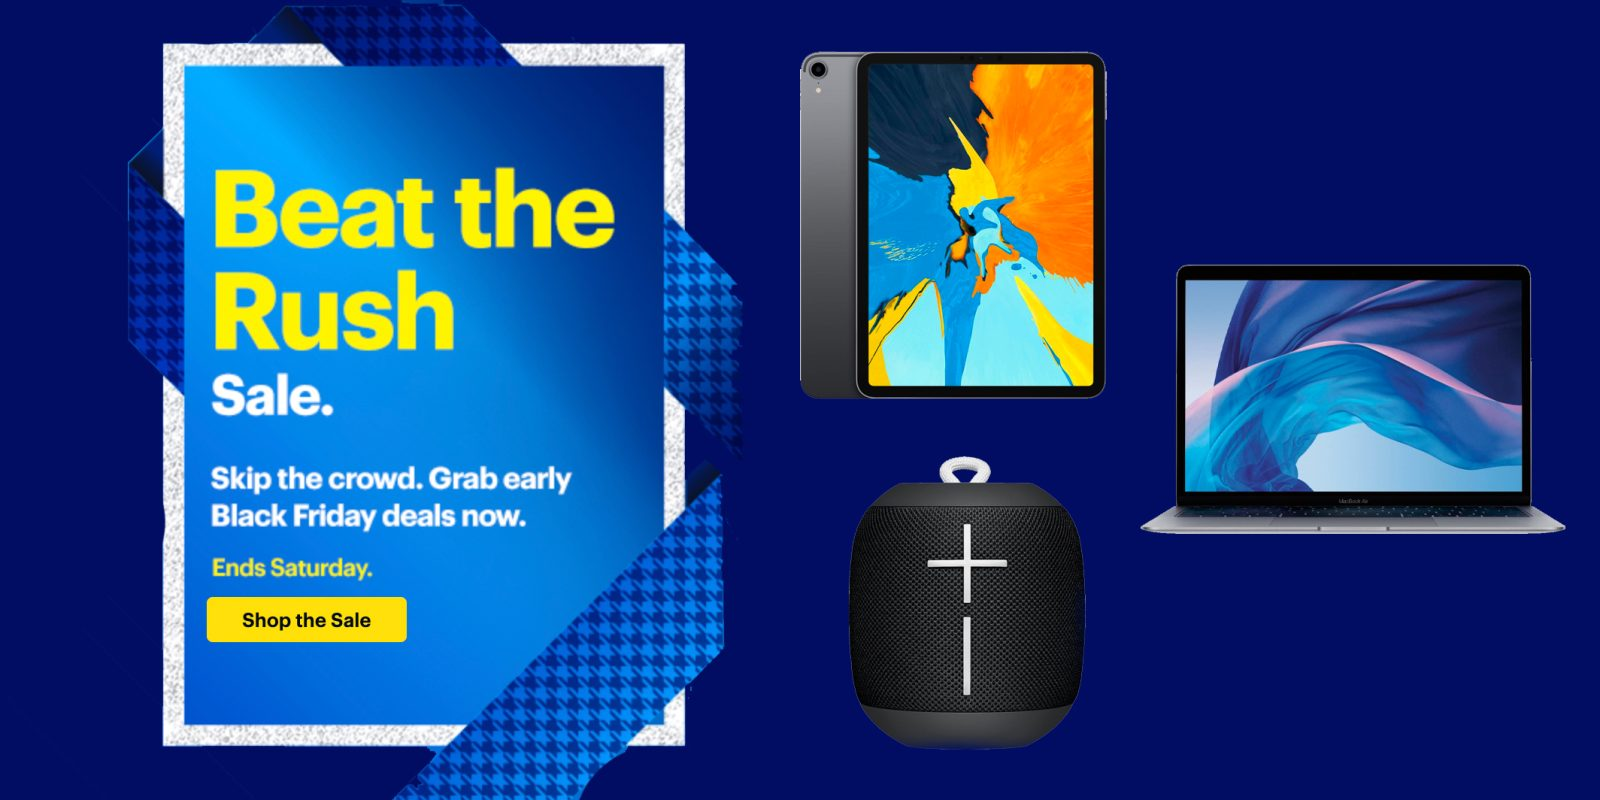 Best Buy Beat the Rush sale offers early deals on iPad Pro, TVs, home audio, more